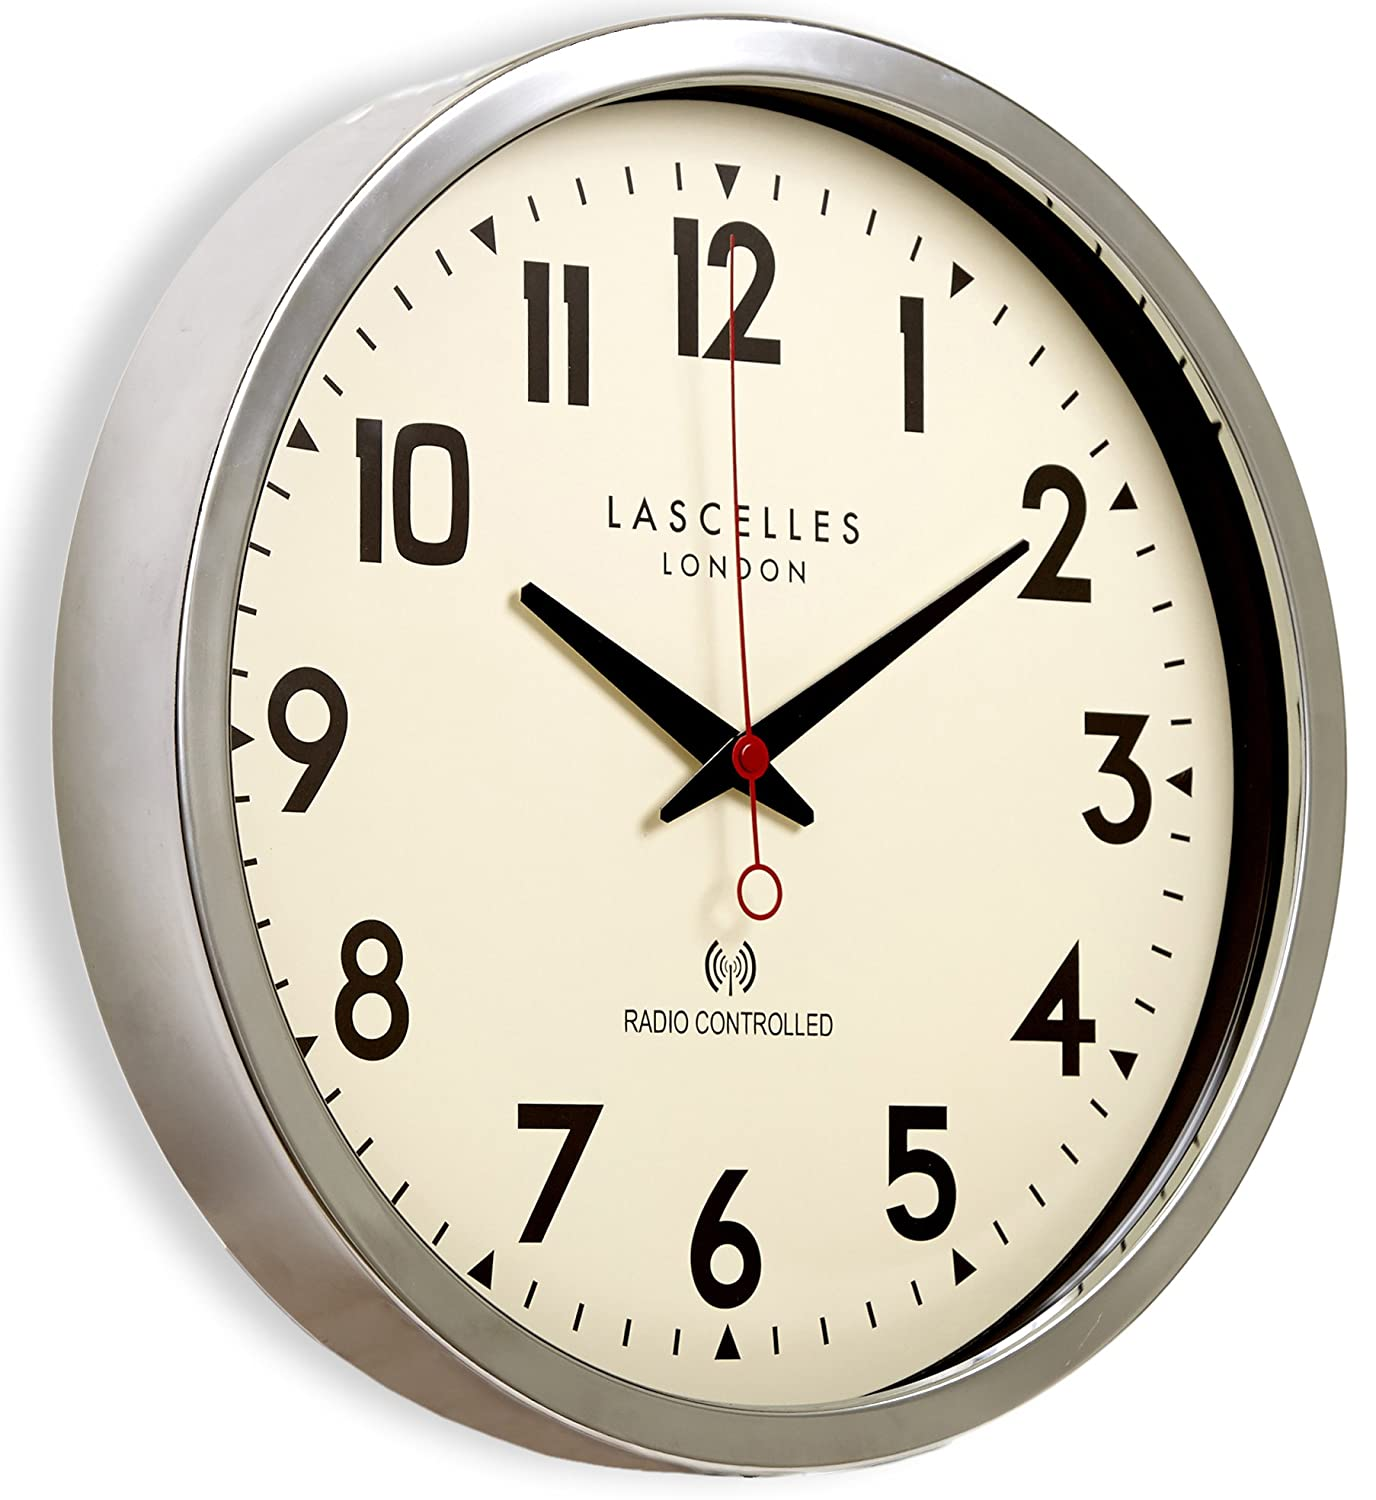 Roger lascelles chrome radio controlled wall clock amazon roger lascelles chrome radio controlled wall clock amazon kitchen home amipublicfo Gallery